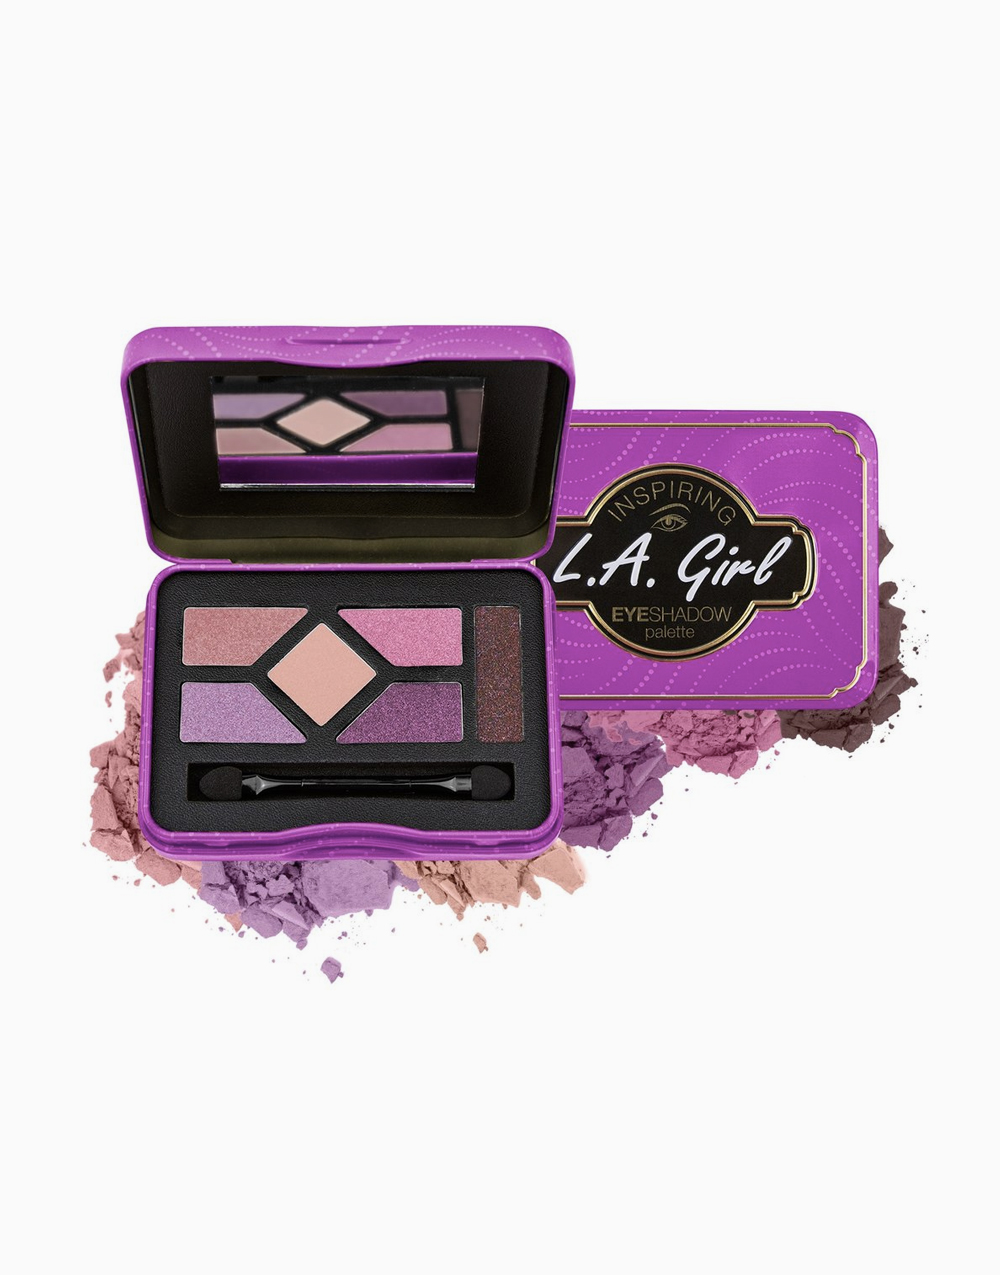 Inspiring Eyeshadow Palette by L.A. Girl | Get Glam & Get Going